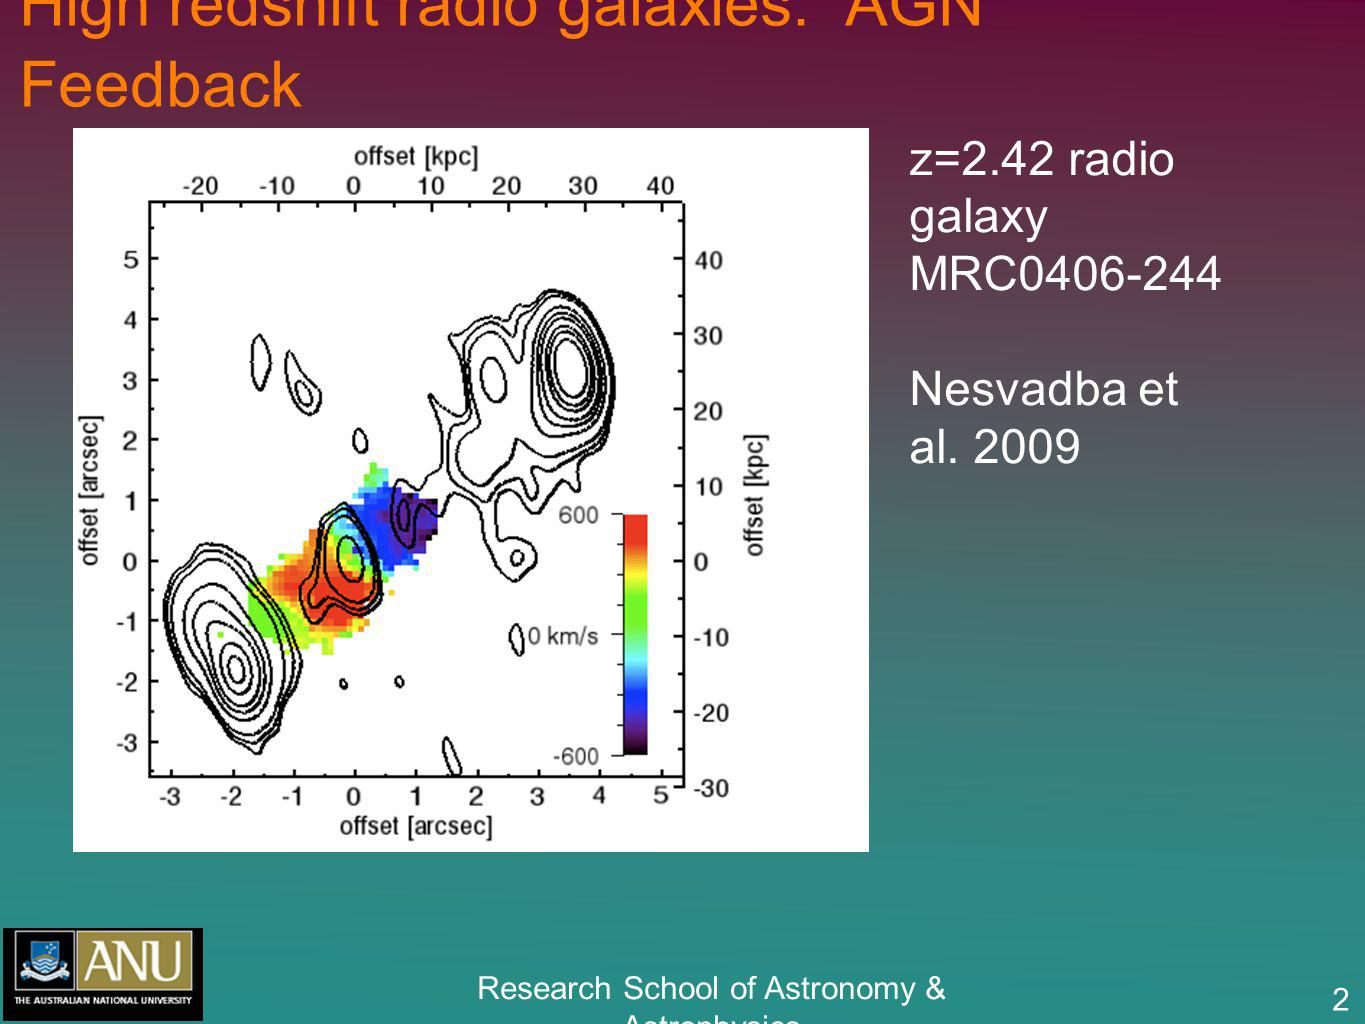 Research School of Astronomy & Astrophysics 3 Feedback from radio galaxies at z ~1-3 requires black holes ~ 10 9 solar masses What is the origin of these black holes?